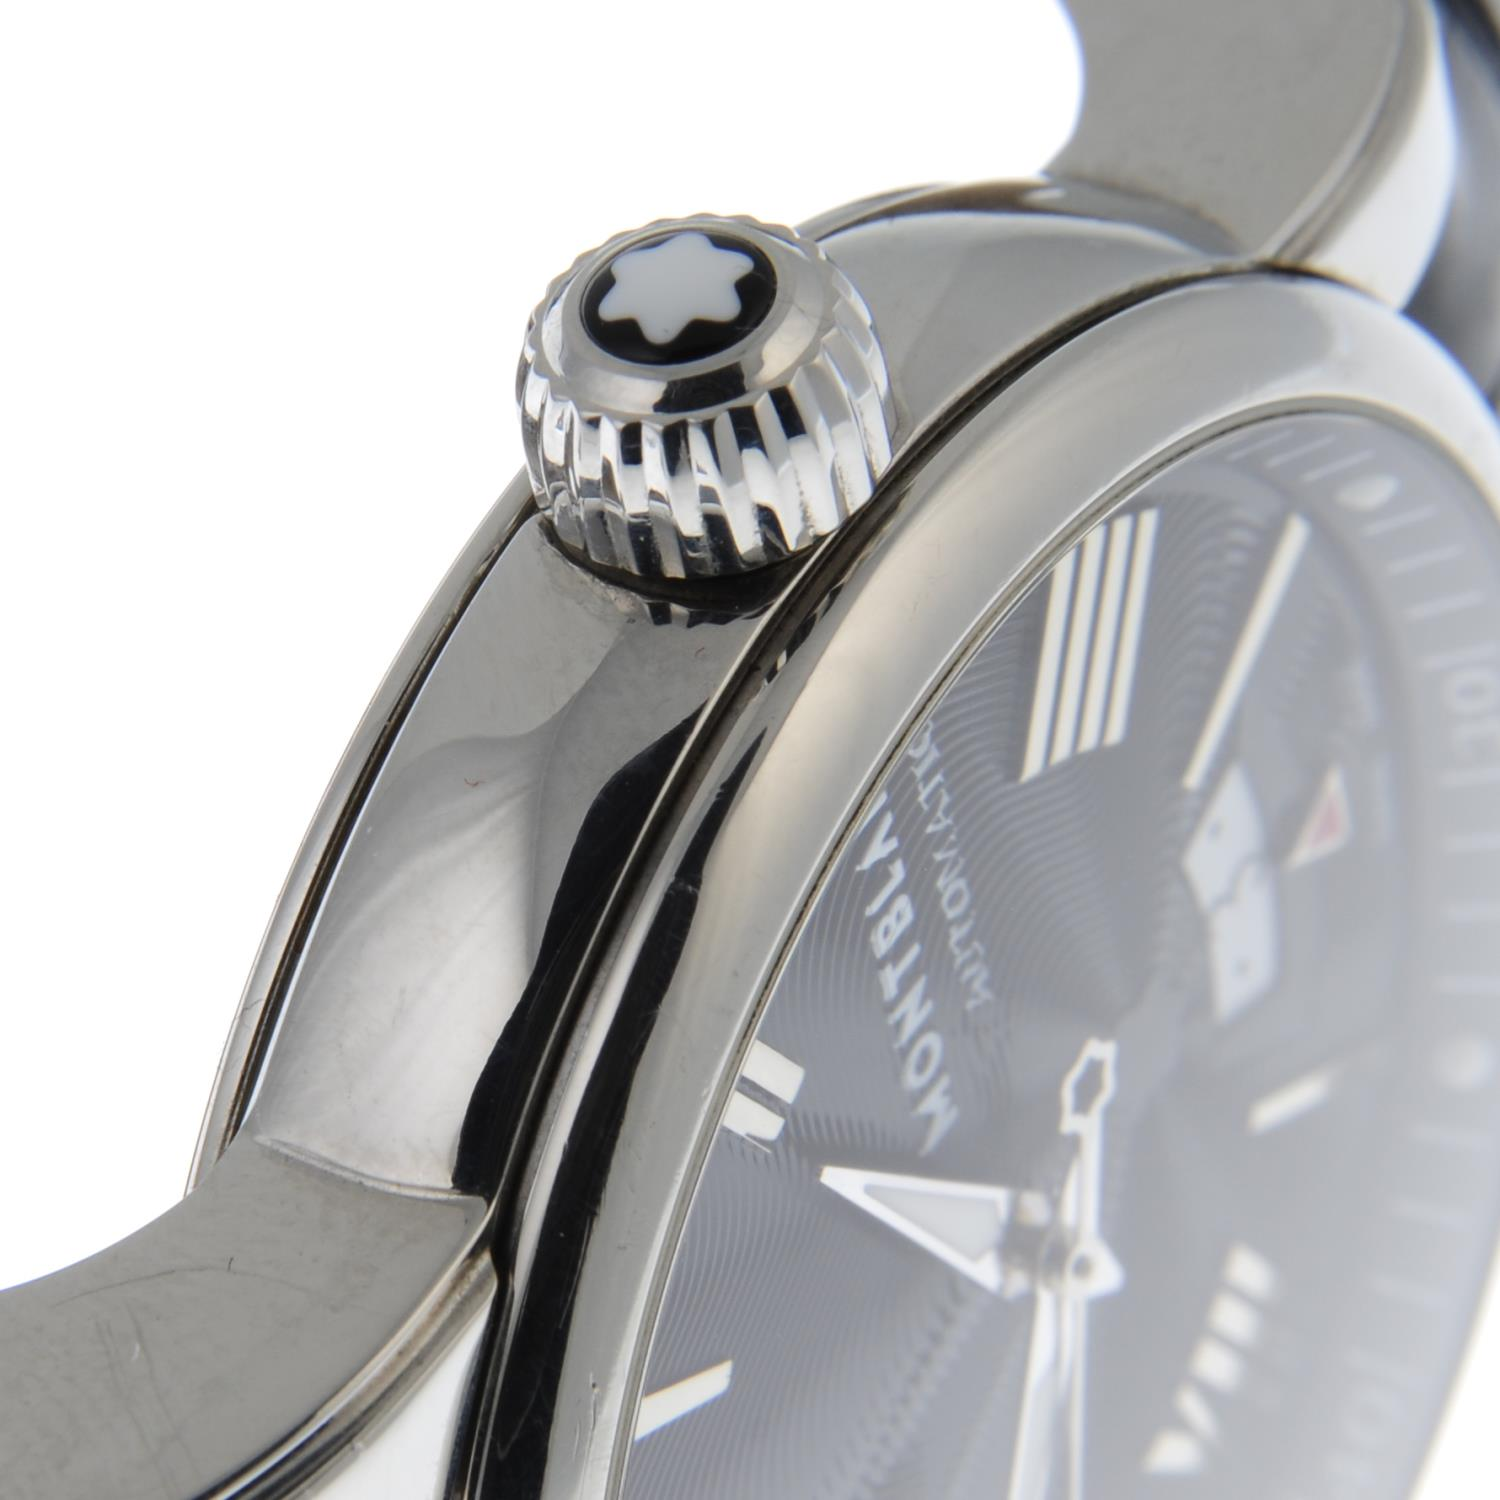 MONTBLANC - a Star wrist watch. - Image 5 of 5